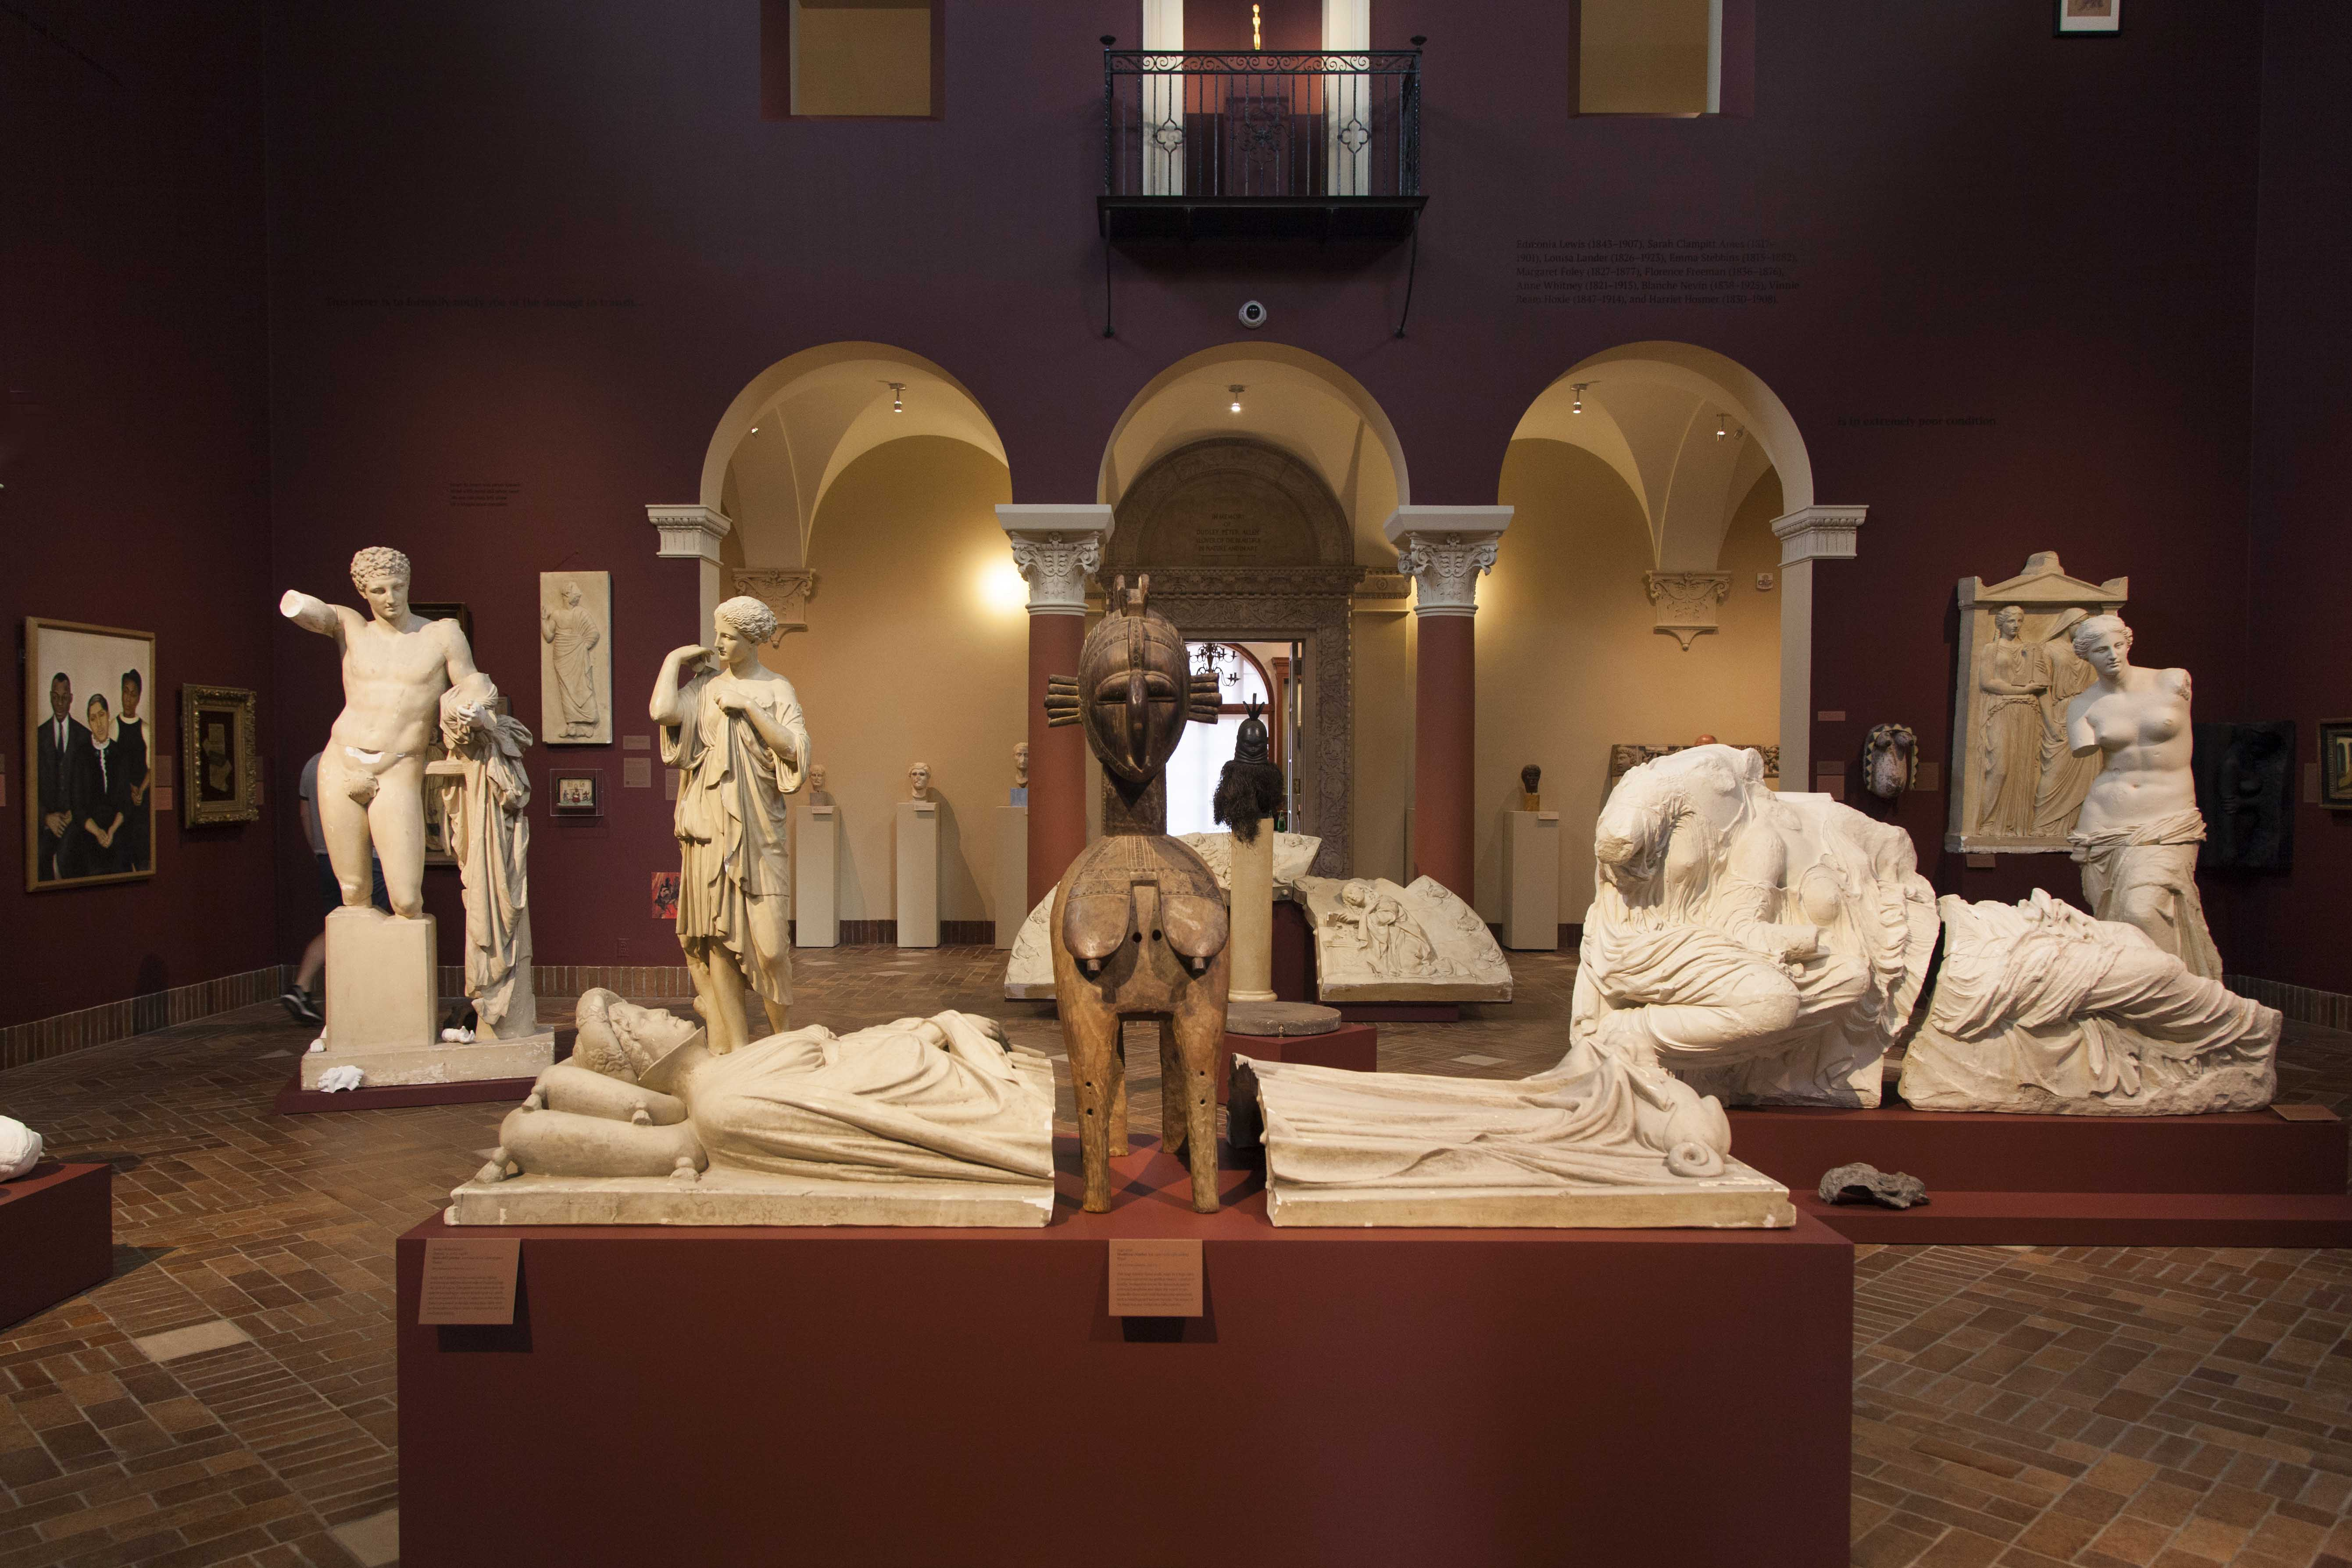 Wildfire Test Pit, one of two exhibits by Fred Wilson that opened Thursday, is an homage to Edmonia Lewis, the 19th century Oberlin student and neoclassical sculptor.